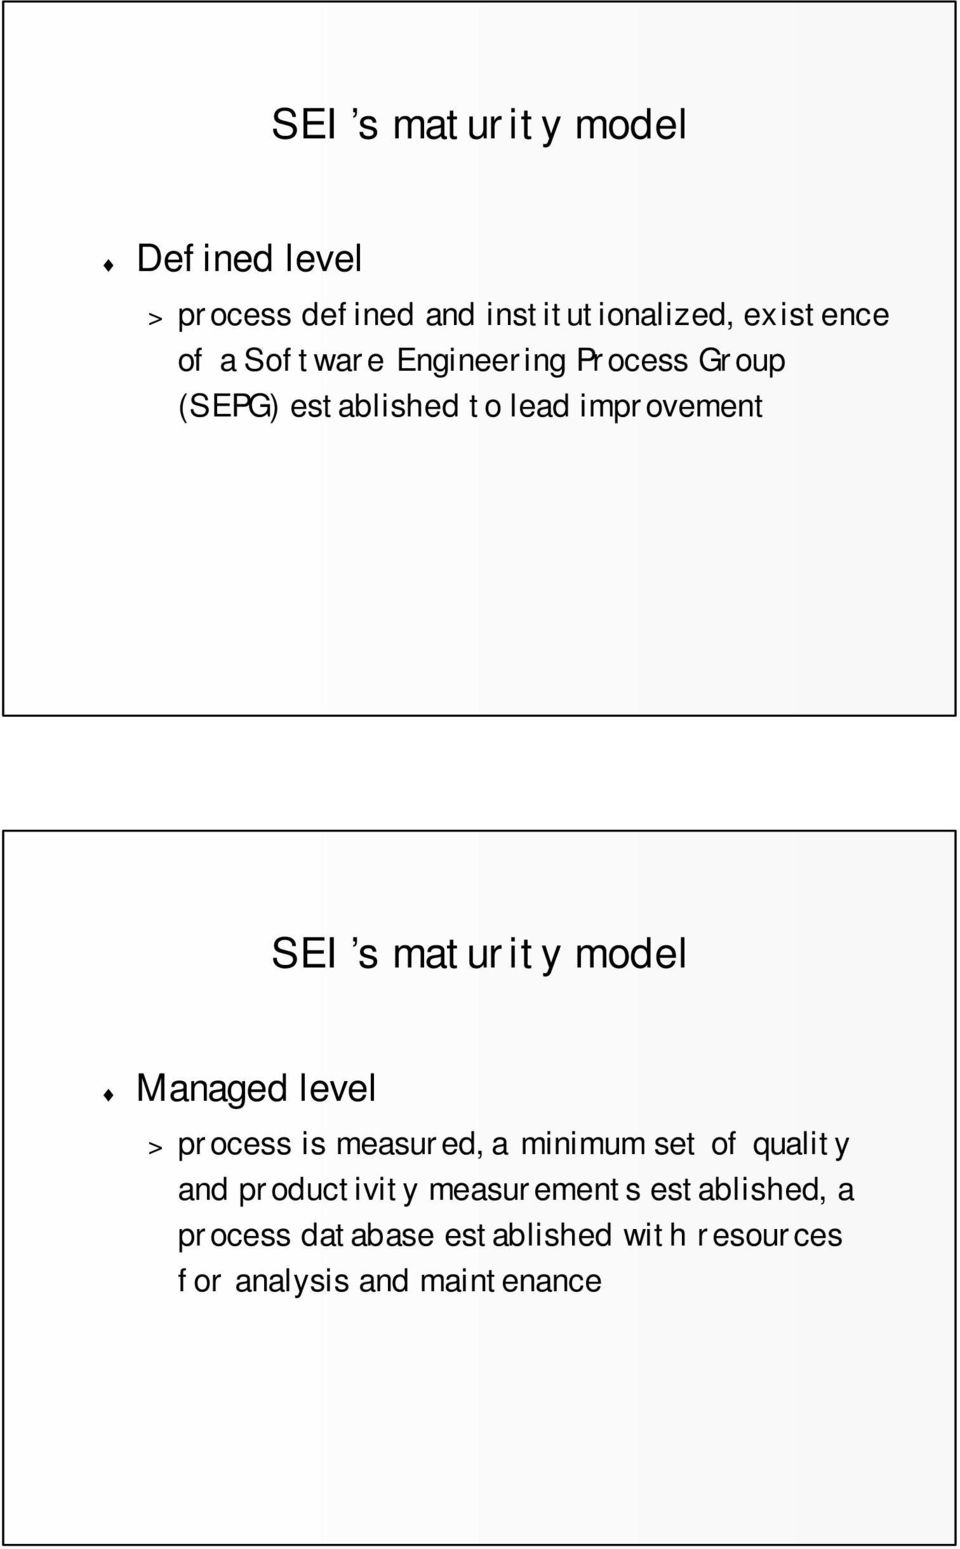 model Managed level > process is measured, a minimum set of quality and productivity